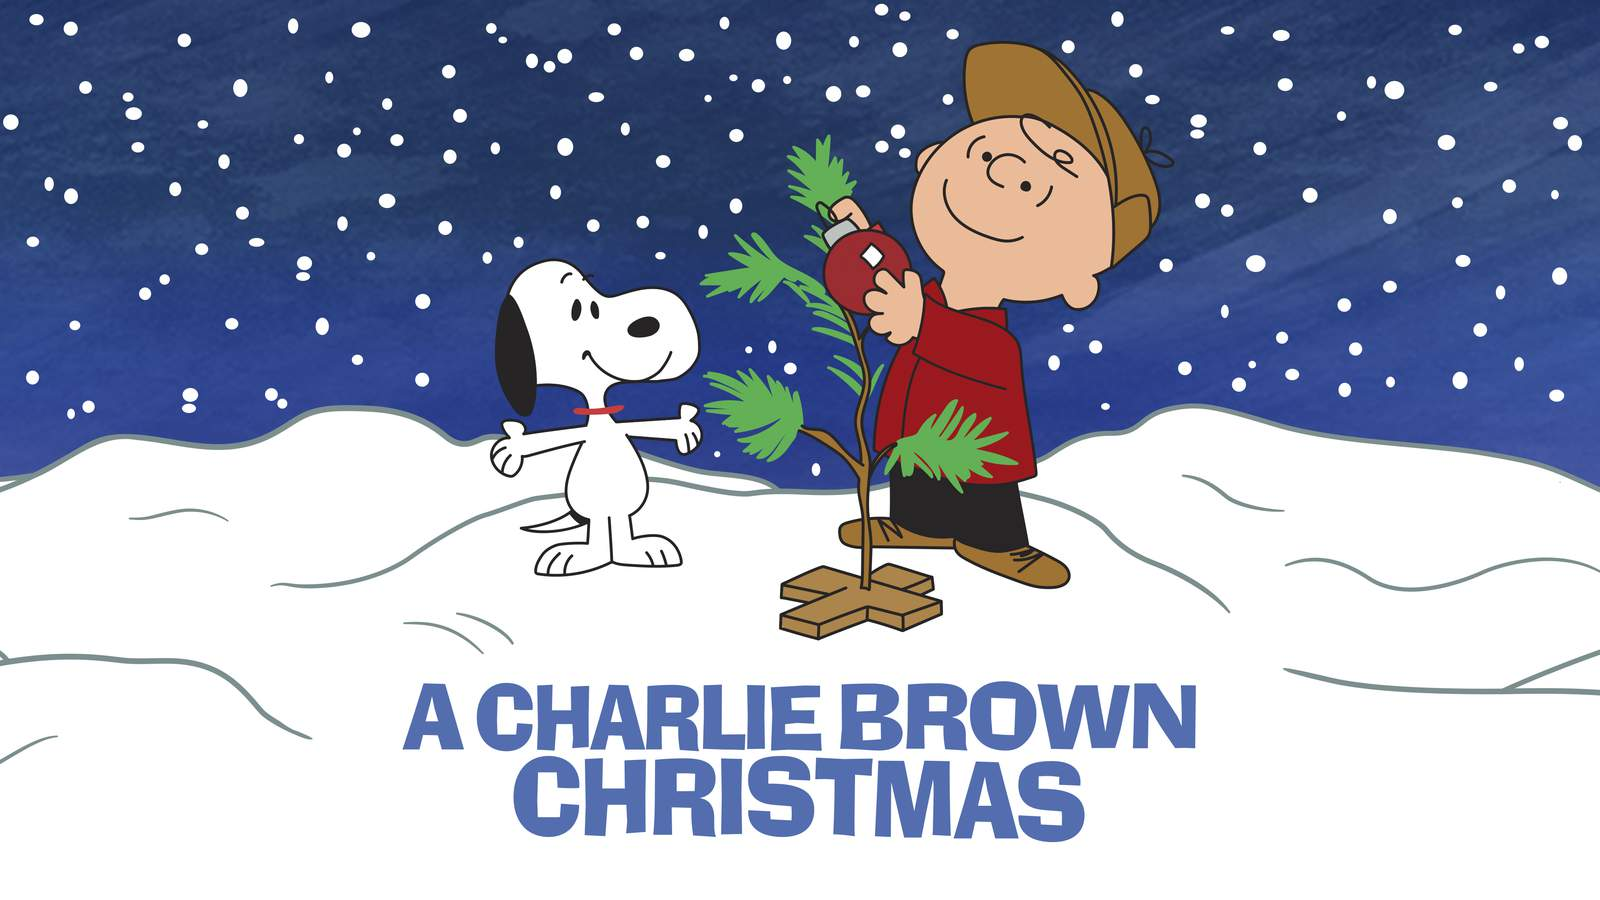 Peanuts Charlie Brown Will Return To Tv For Thanksgiving Christmas Specials After All